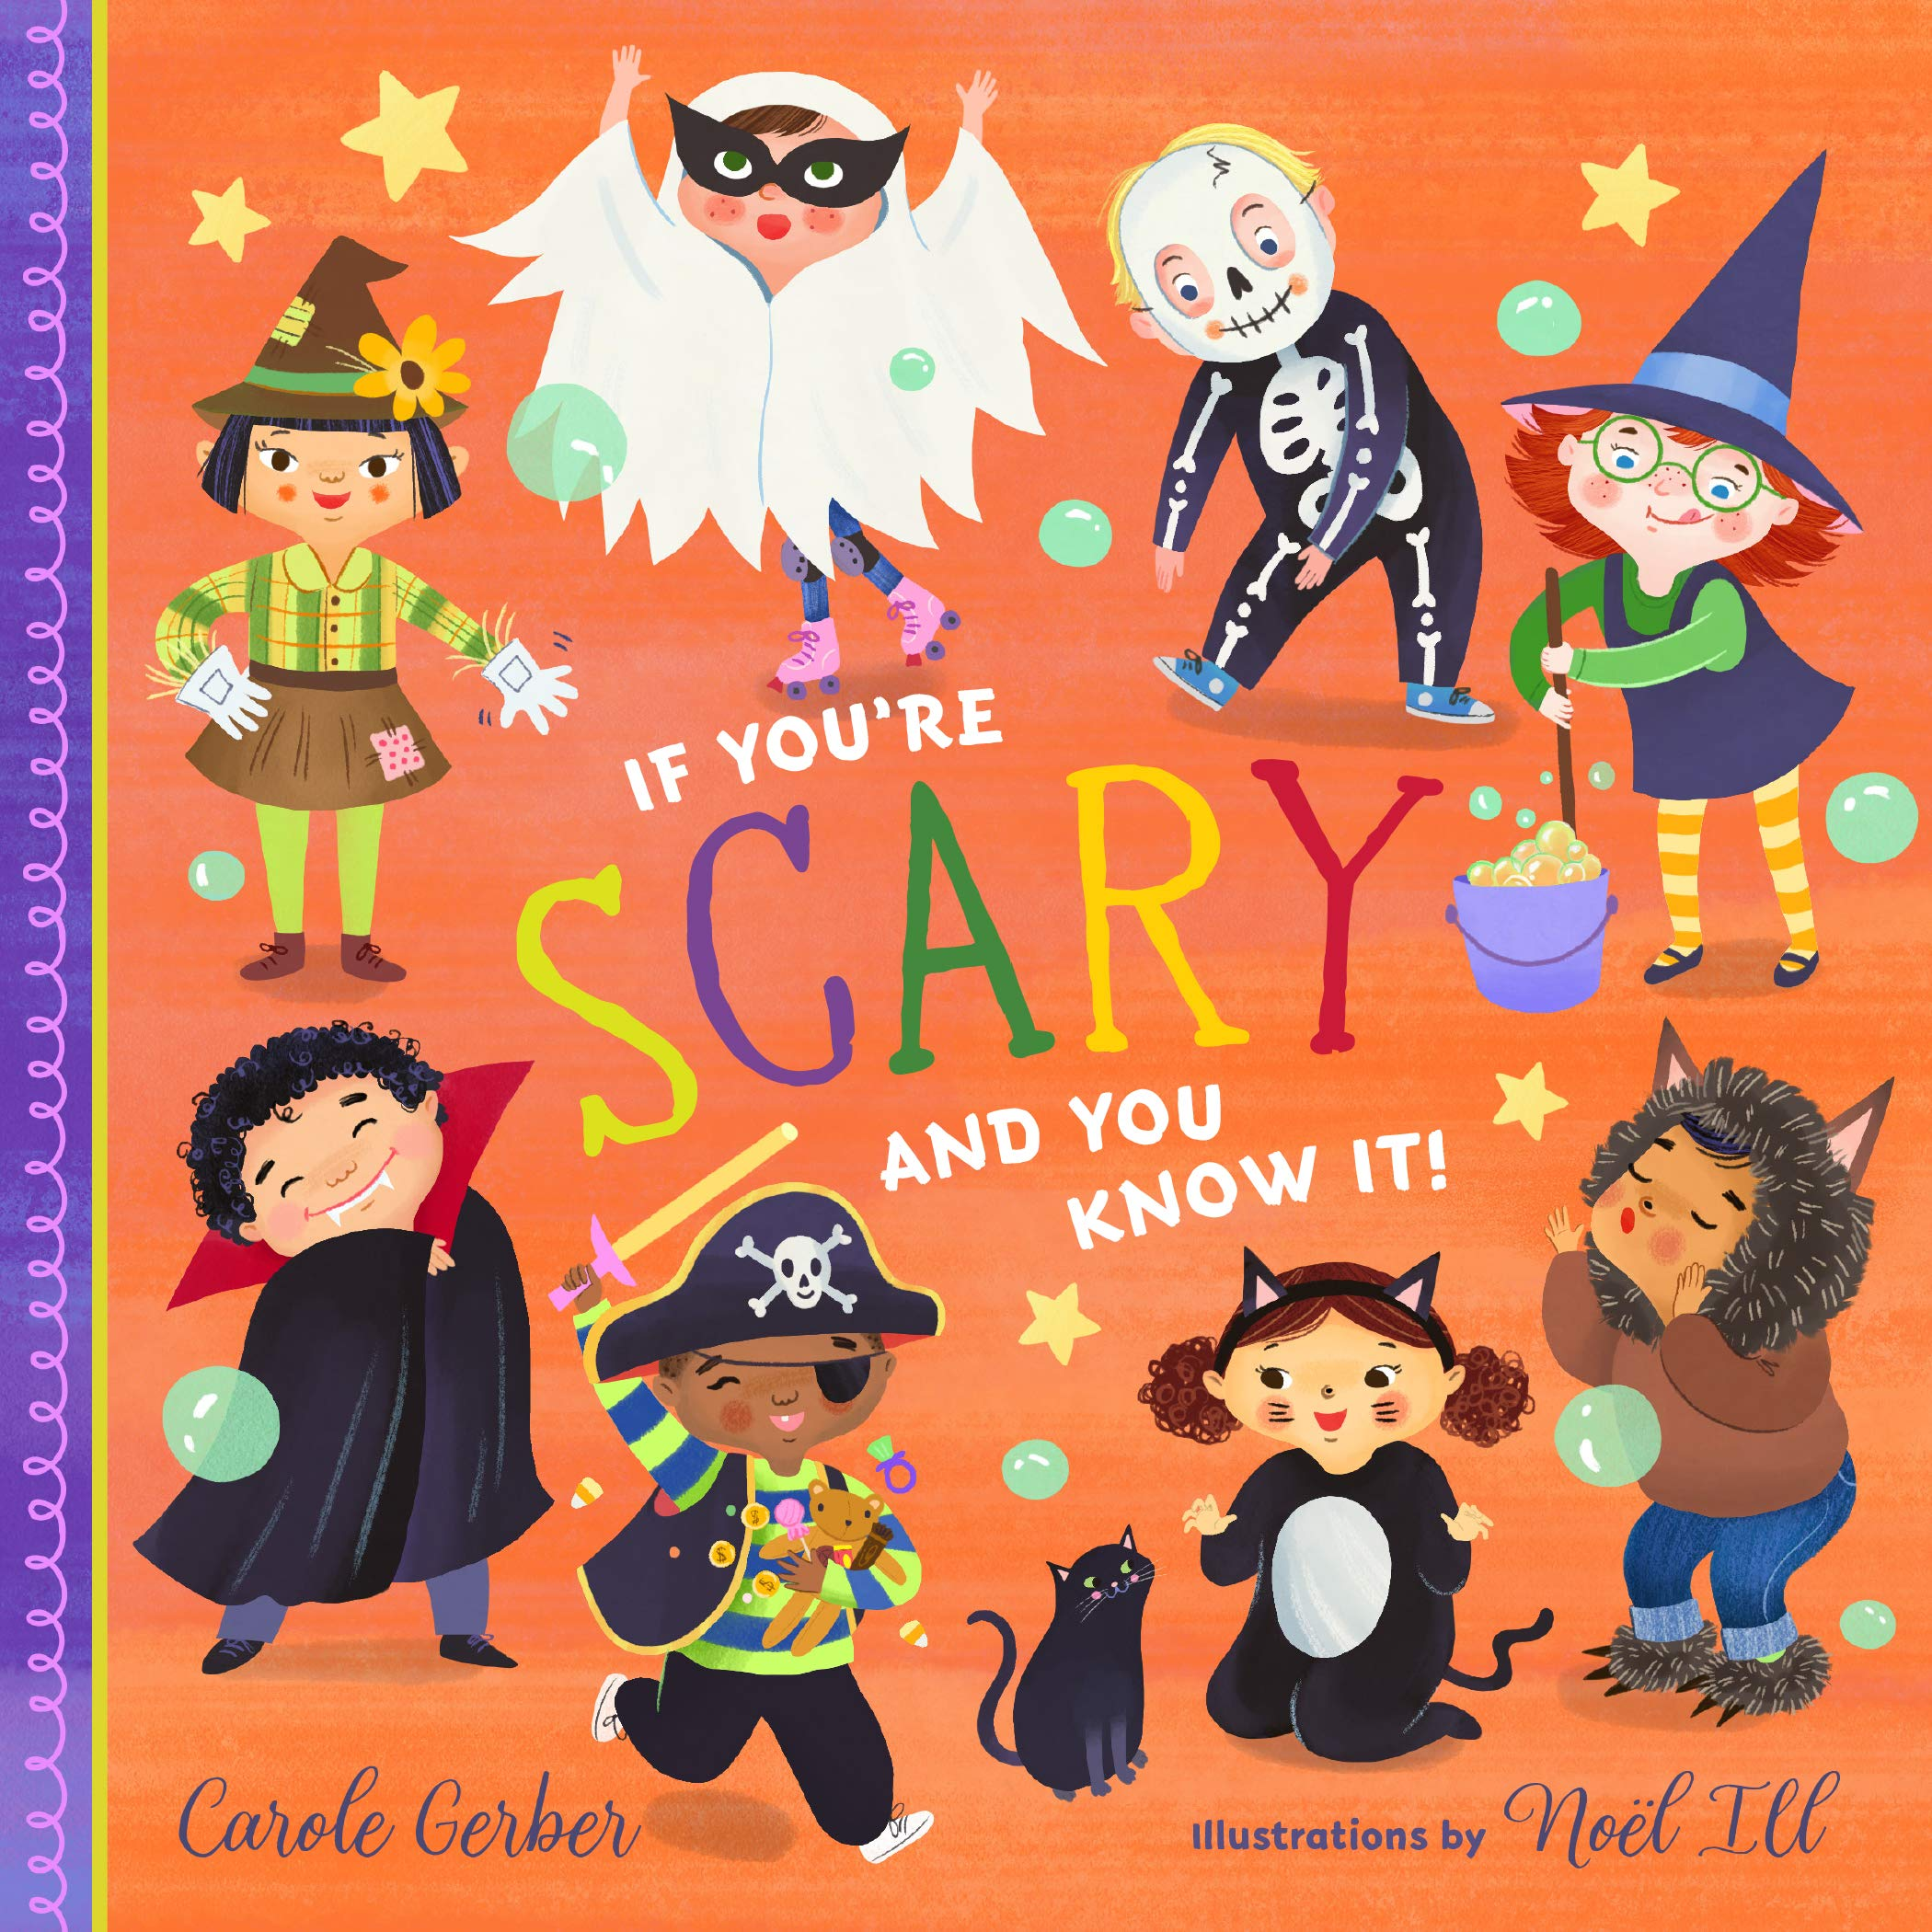 celebrate-pciture-books-picture-book-review-if-you're-scary-and-you-know-it-cover